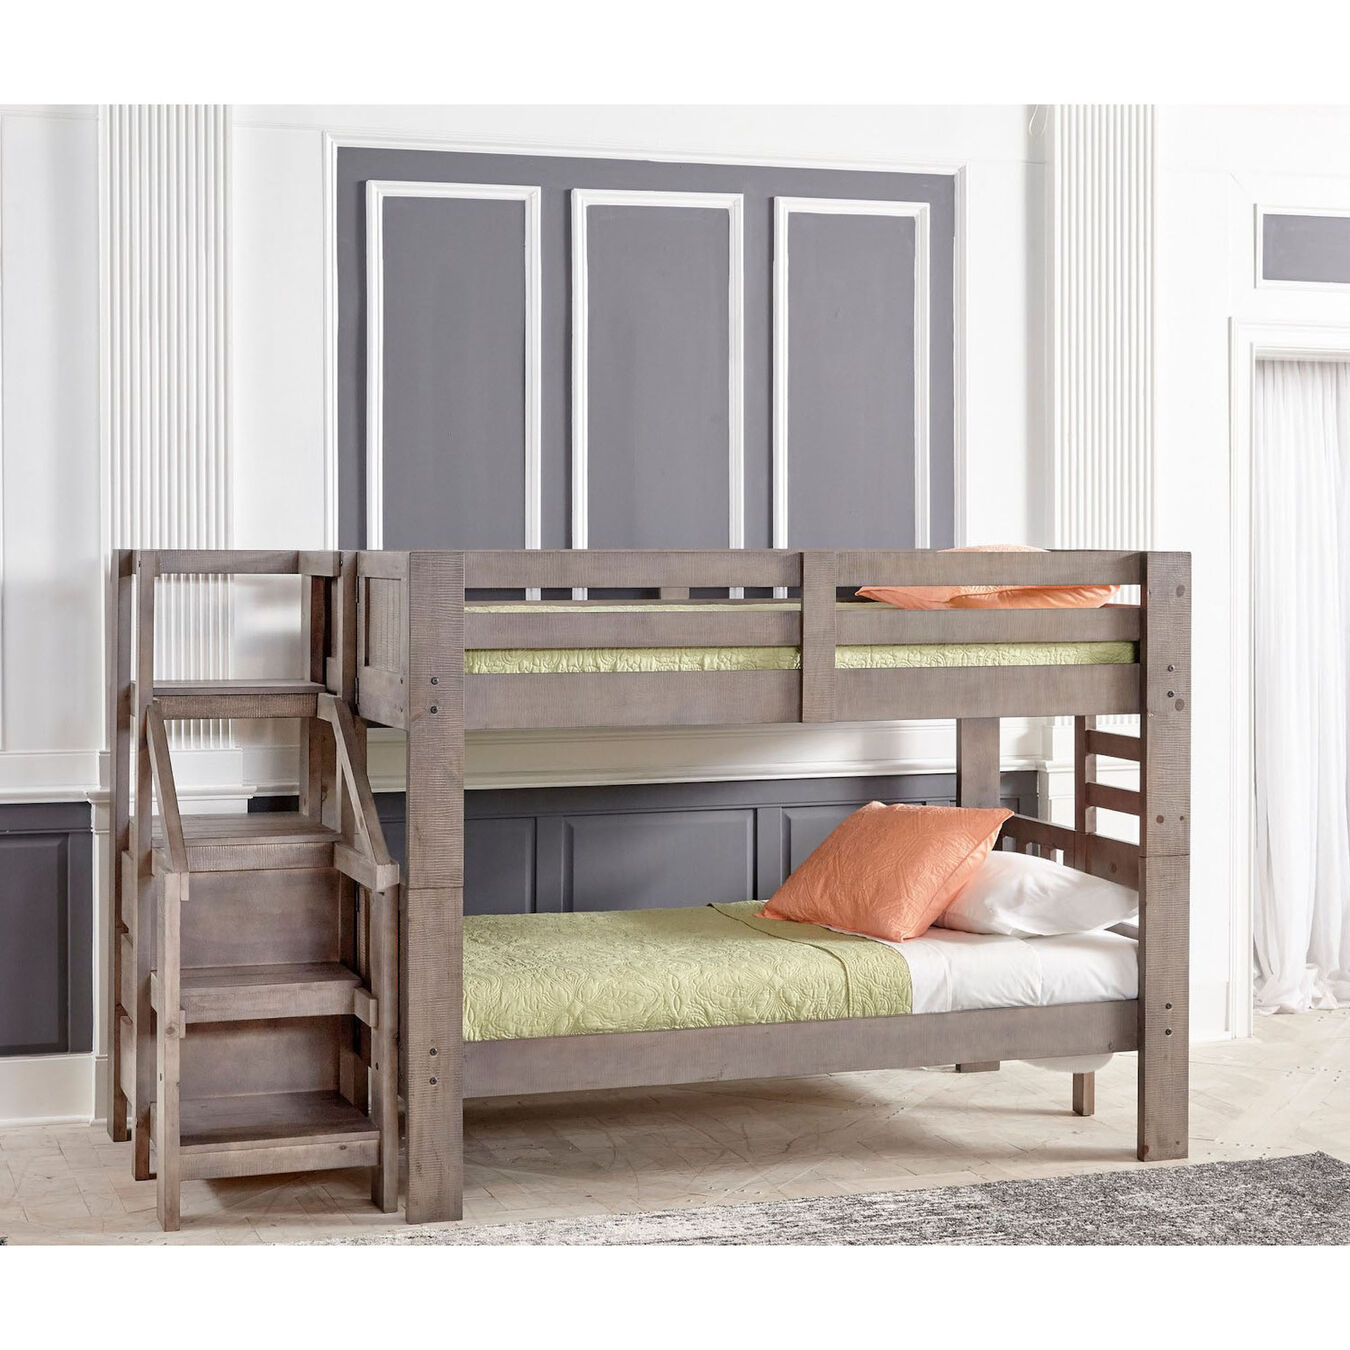 Oak Furniture West Bedroom Groups 7 Piece Twin Bunk Bed with